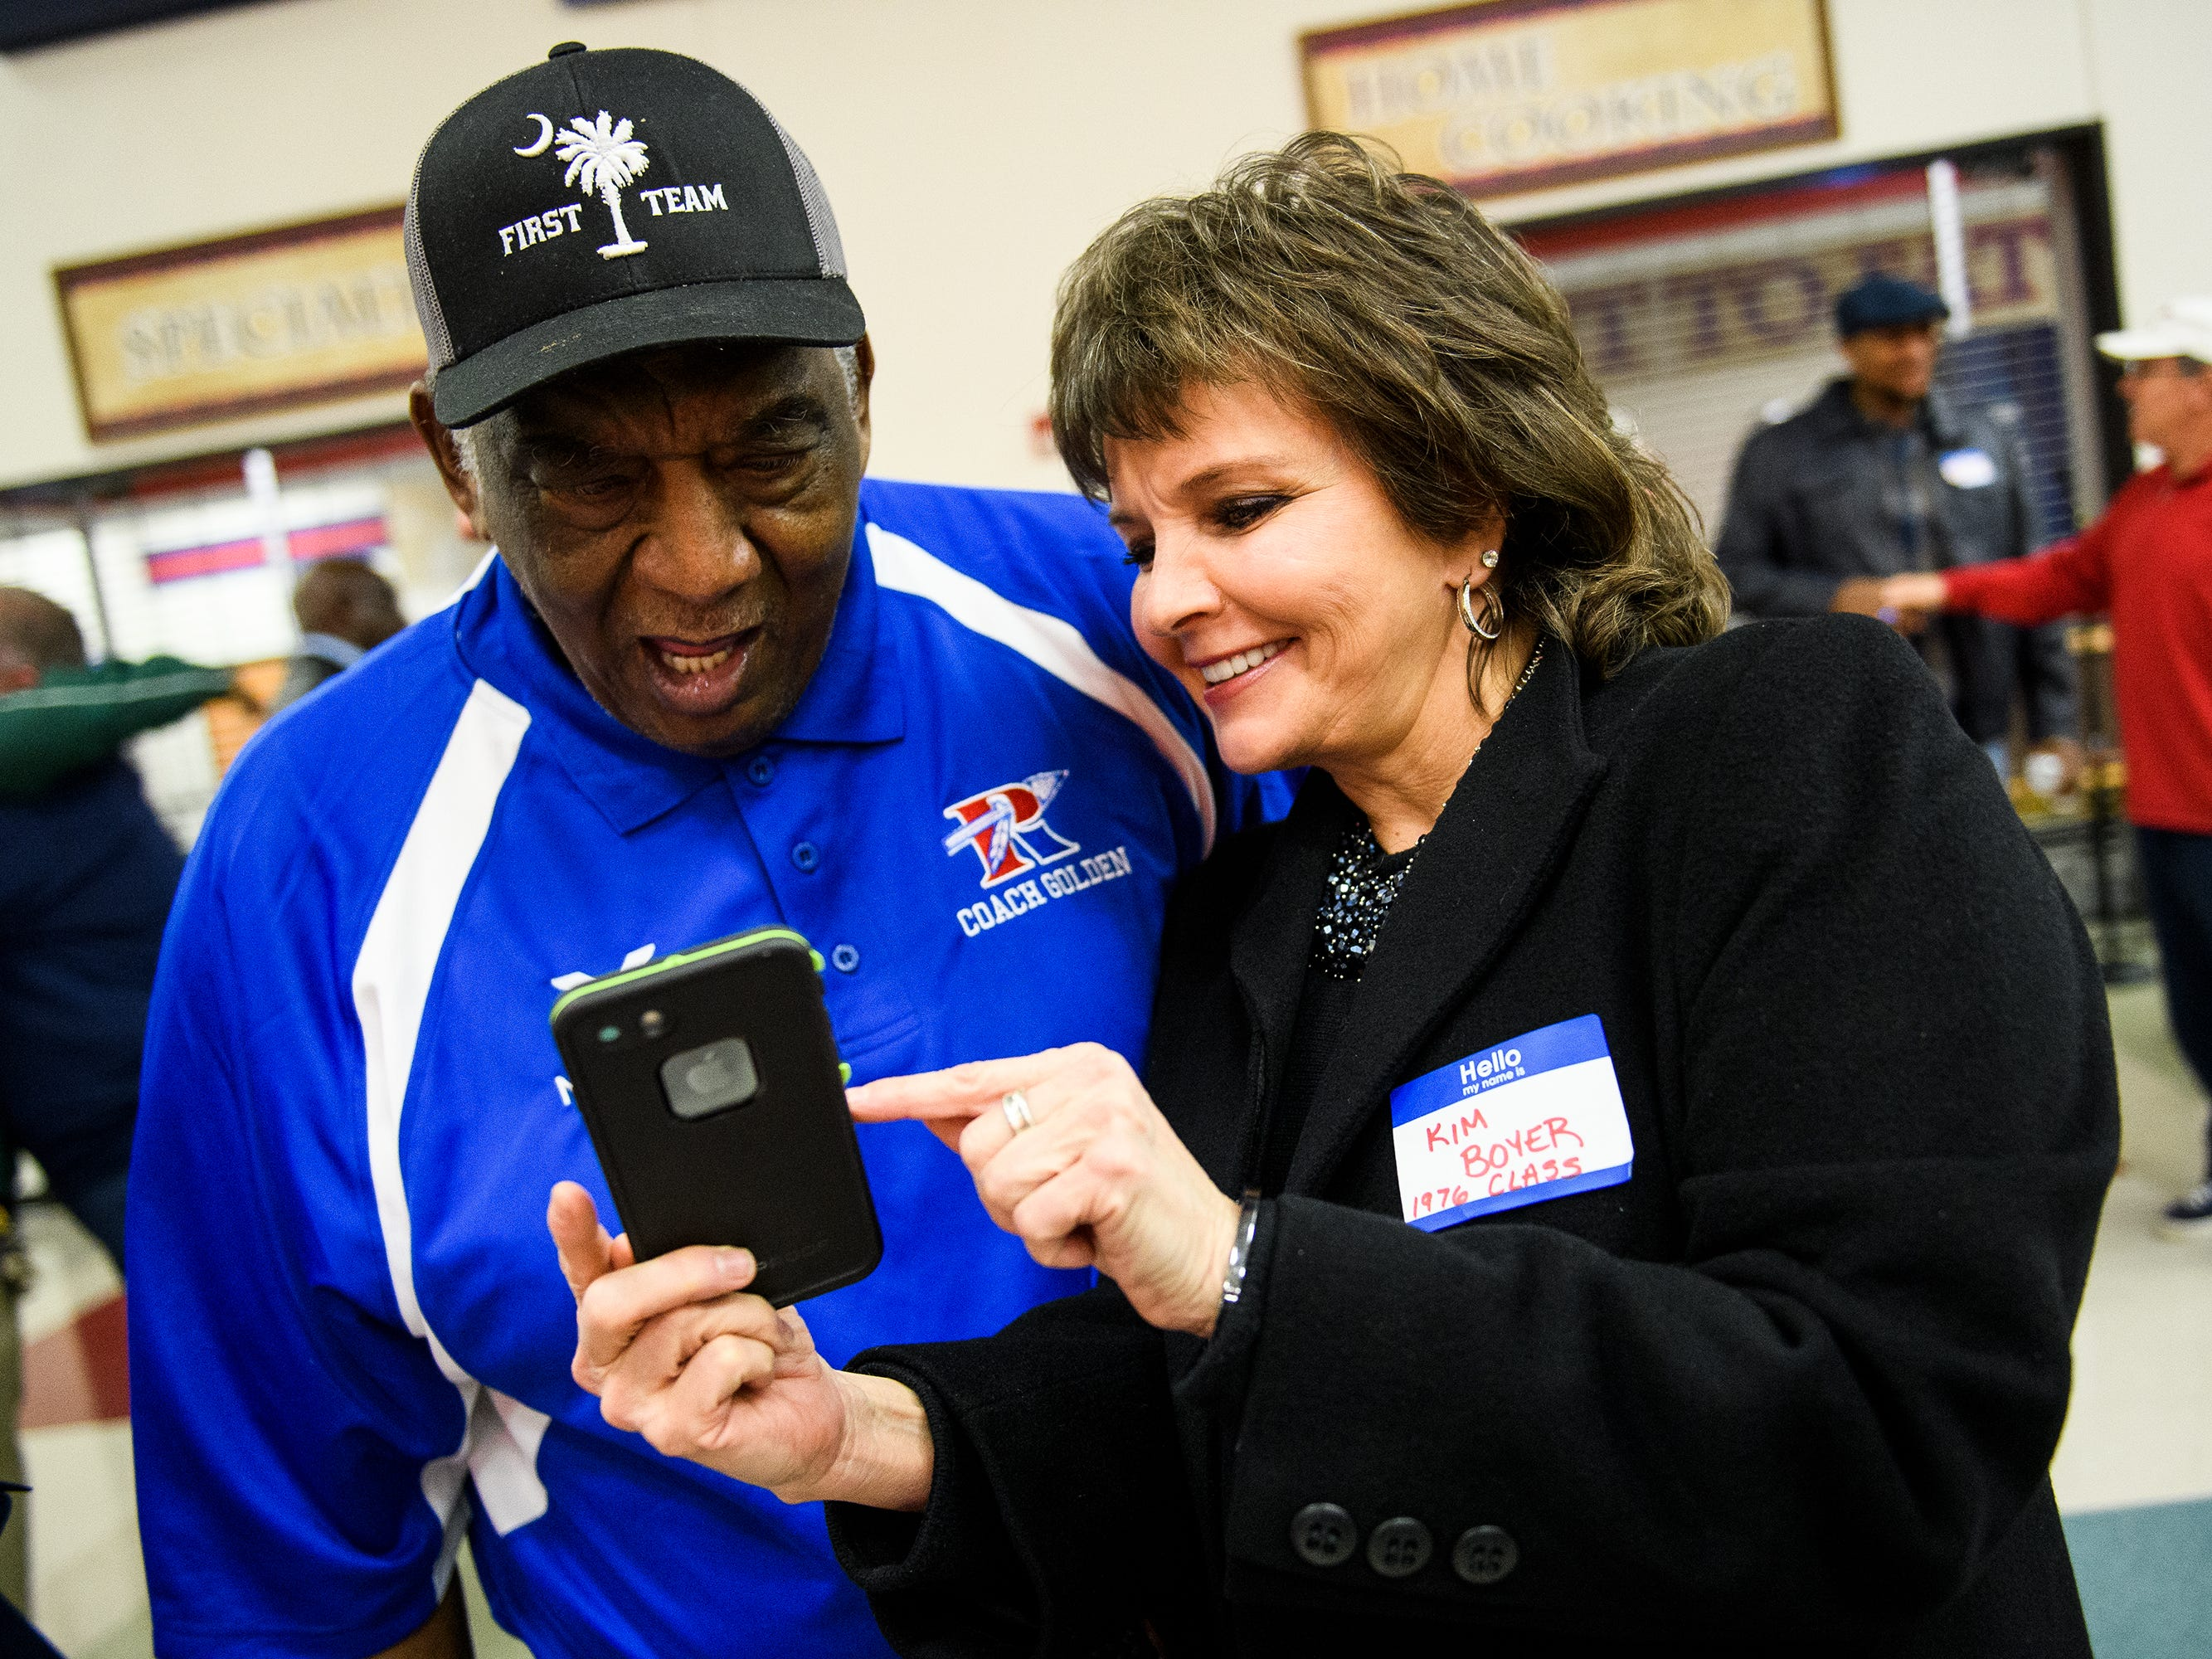 Kim Boyer shows former Riverside basketball coach Louie Golden an old photograph on her phone during an honoring service for Golden on Friday, Jan. 25 2019 at Riverside High School.